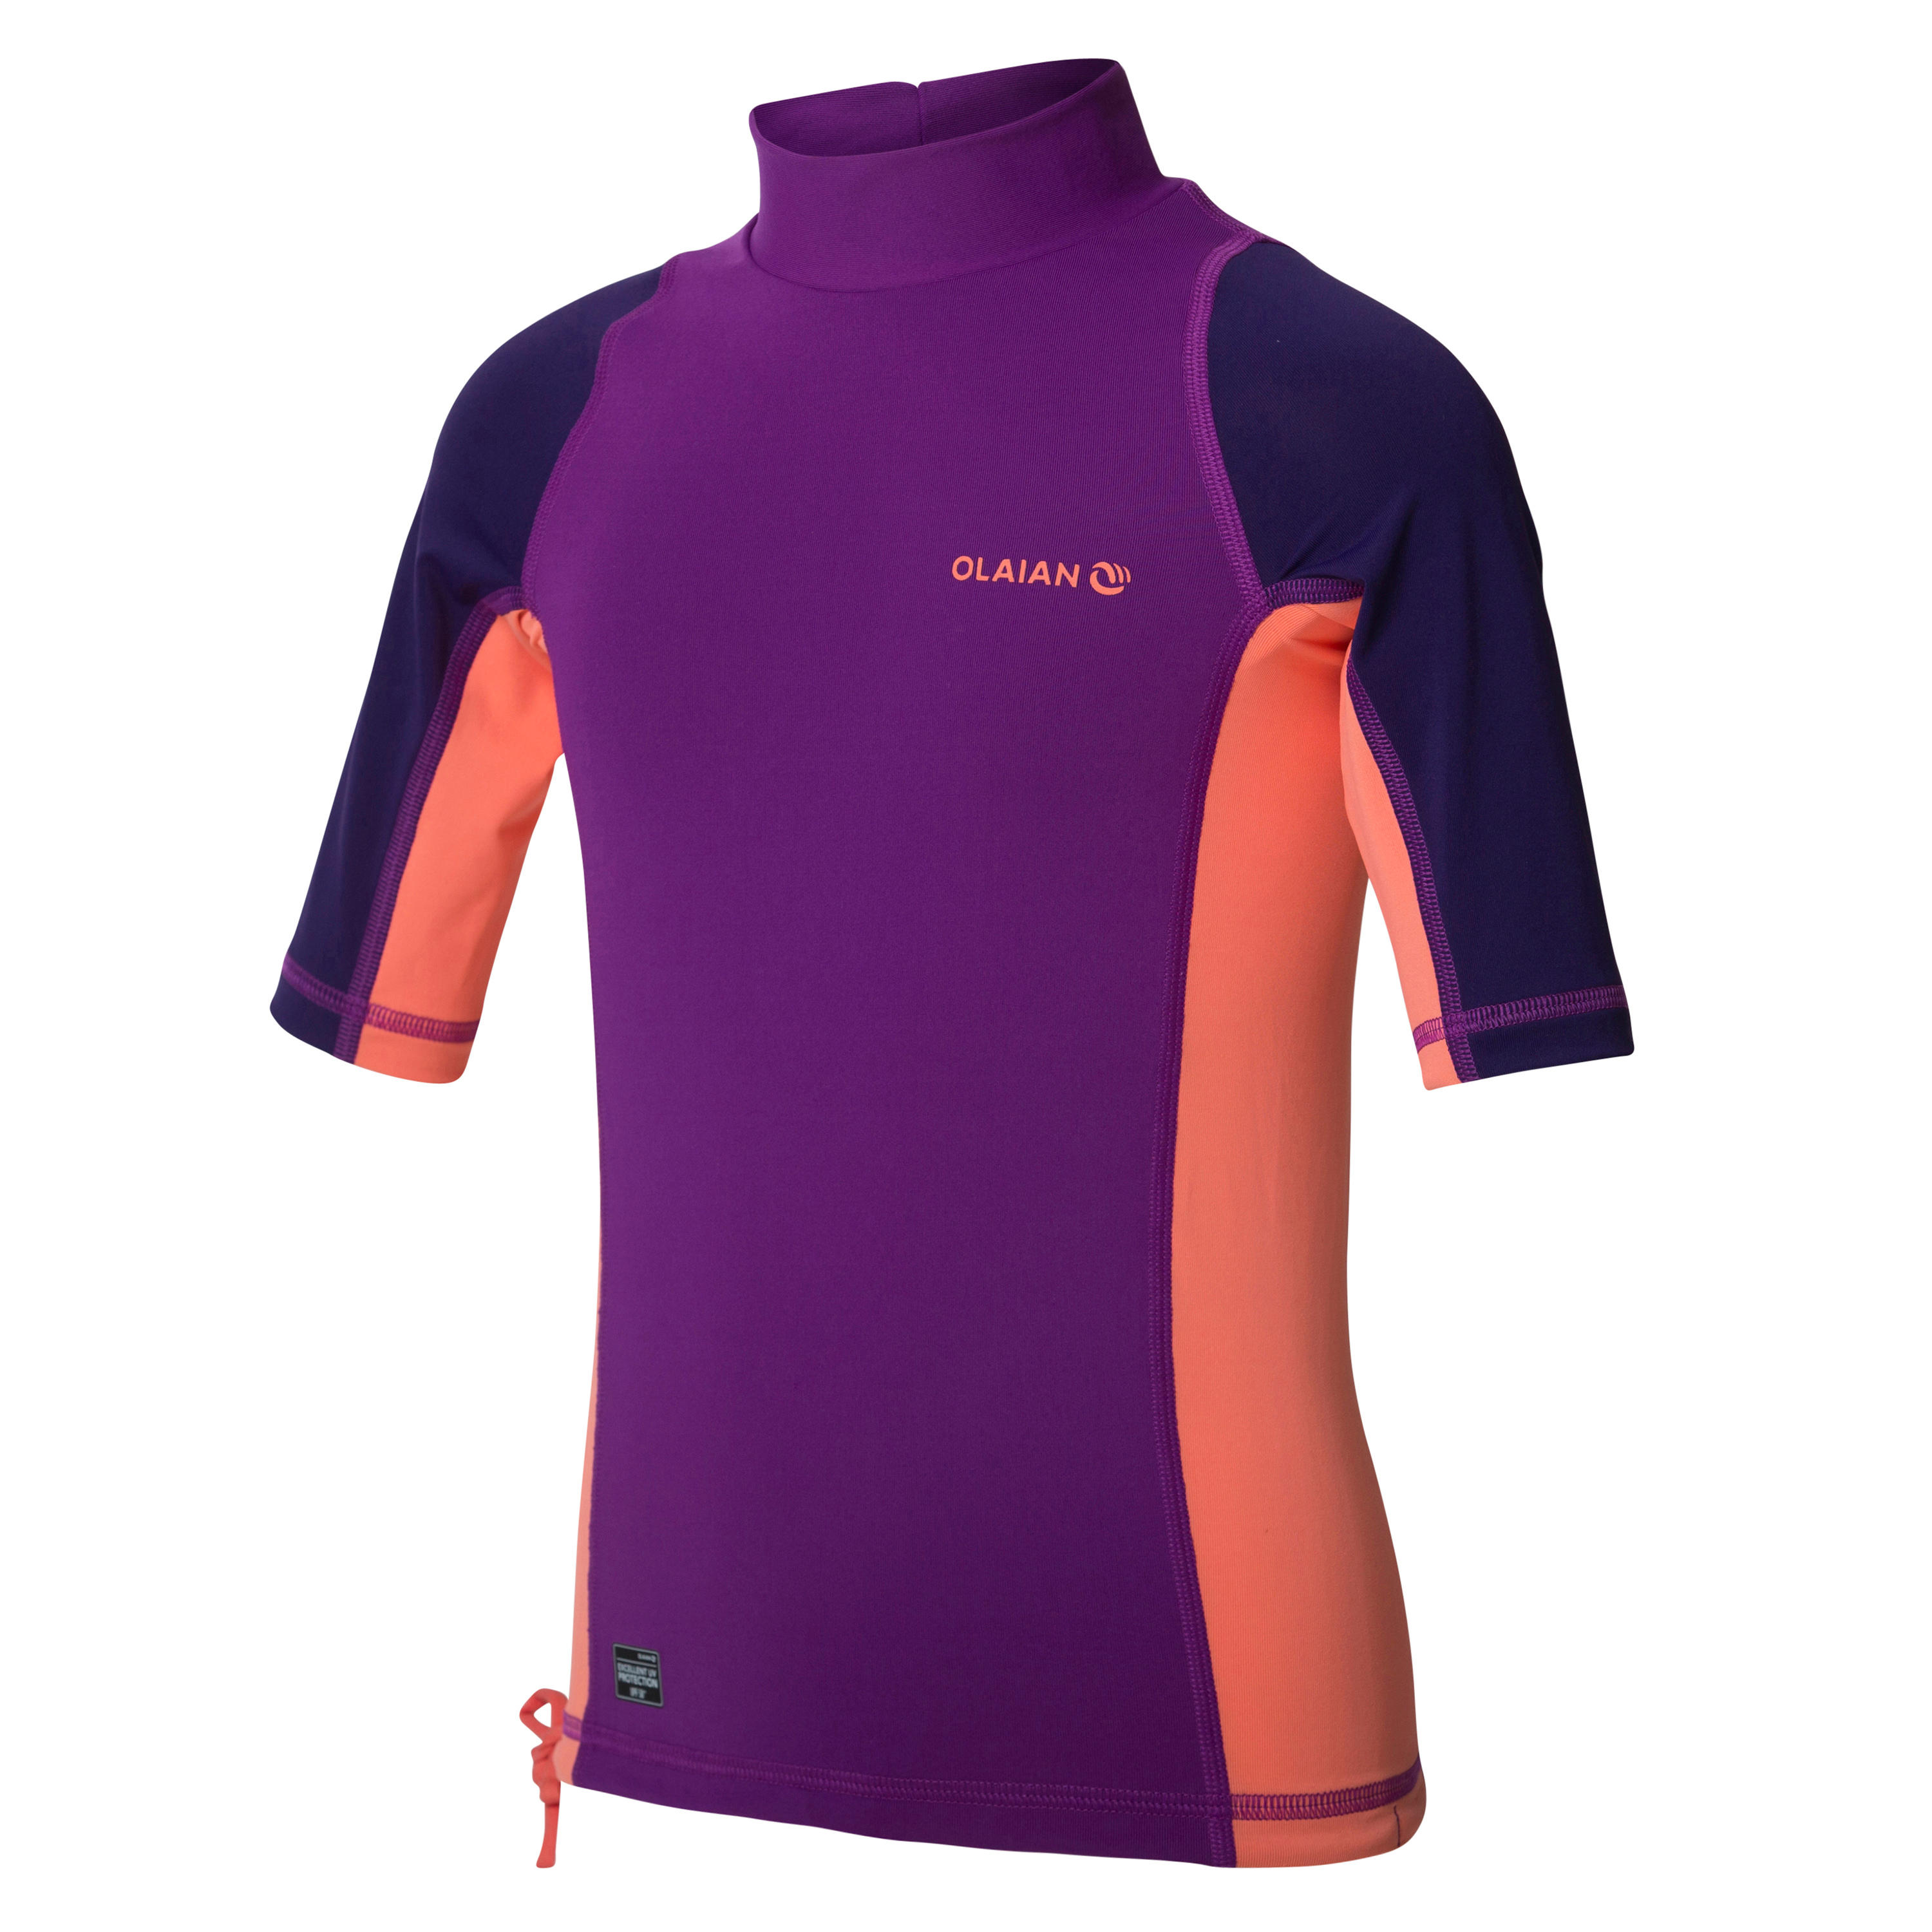 500 Children's Short Sleeve UV Protection Surfing Top T-Shirt - Purple coral